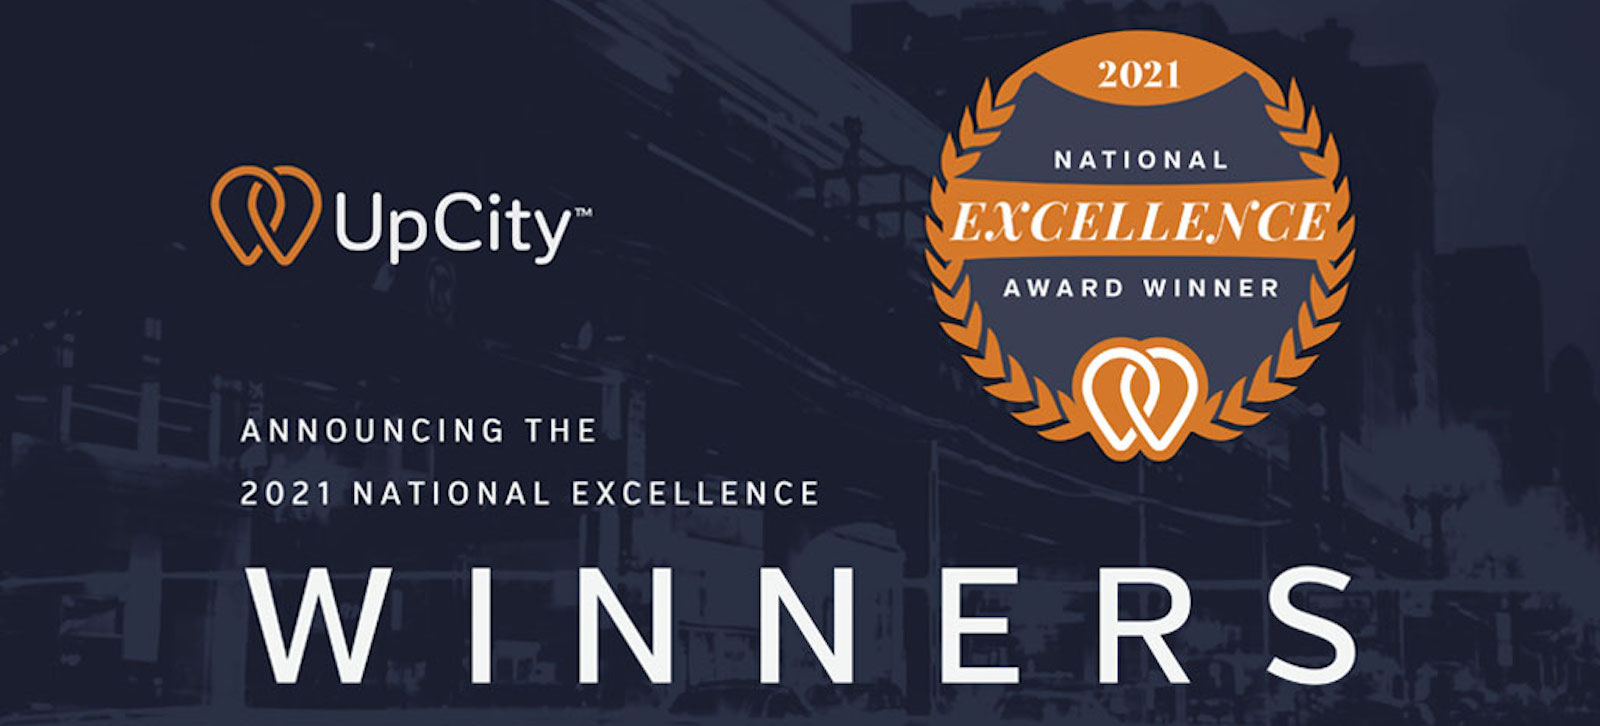 UpCity 2021 Excellence Award Winners Are Here!